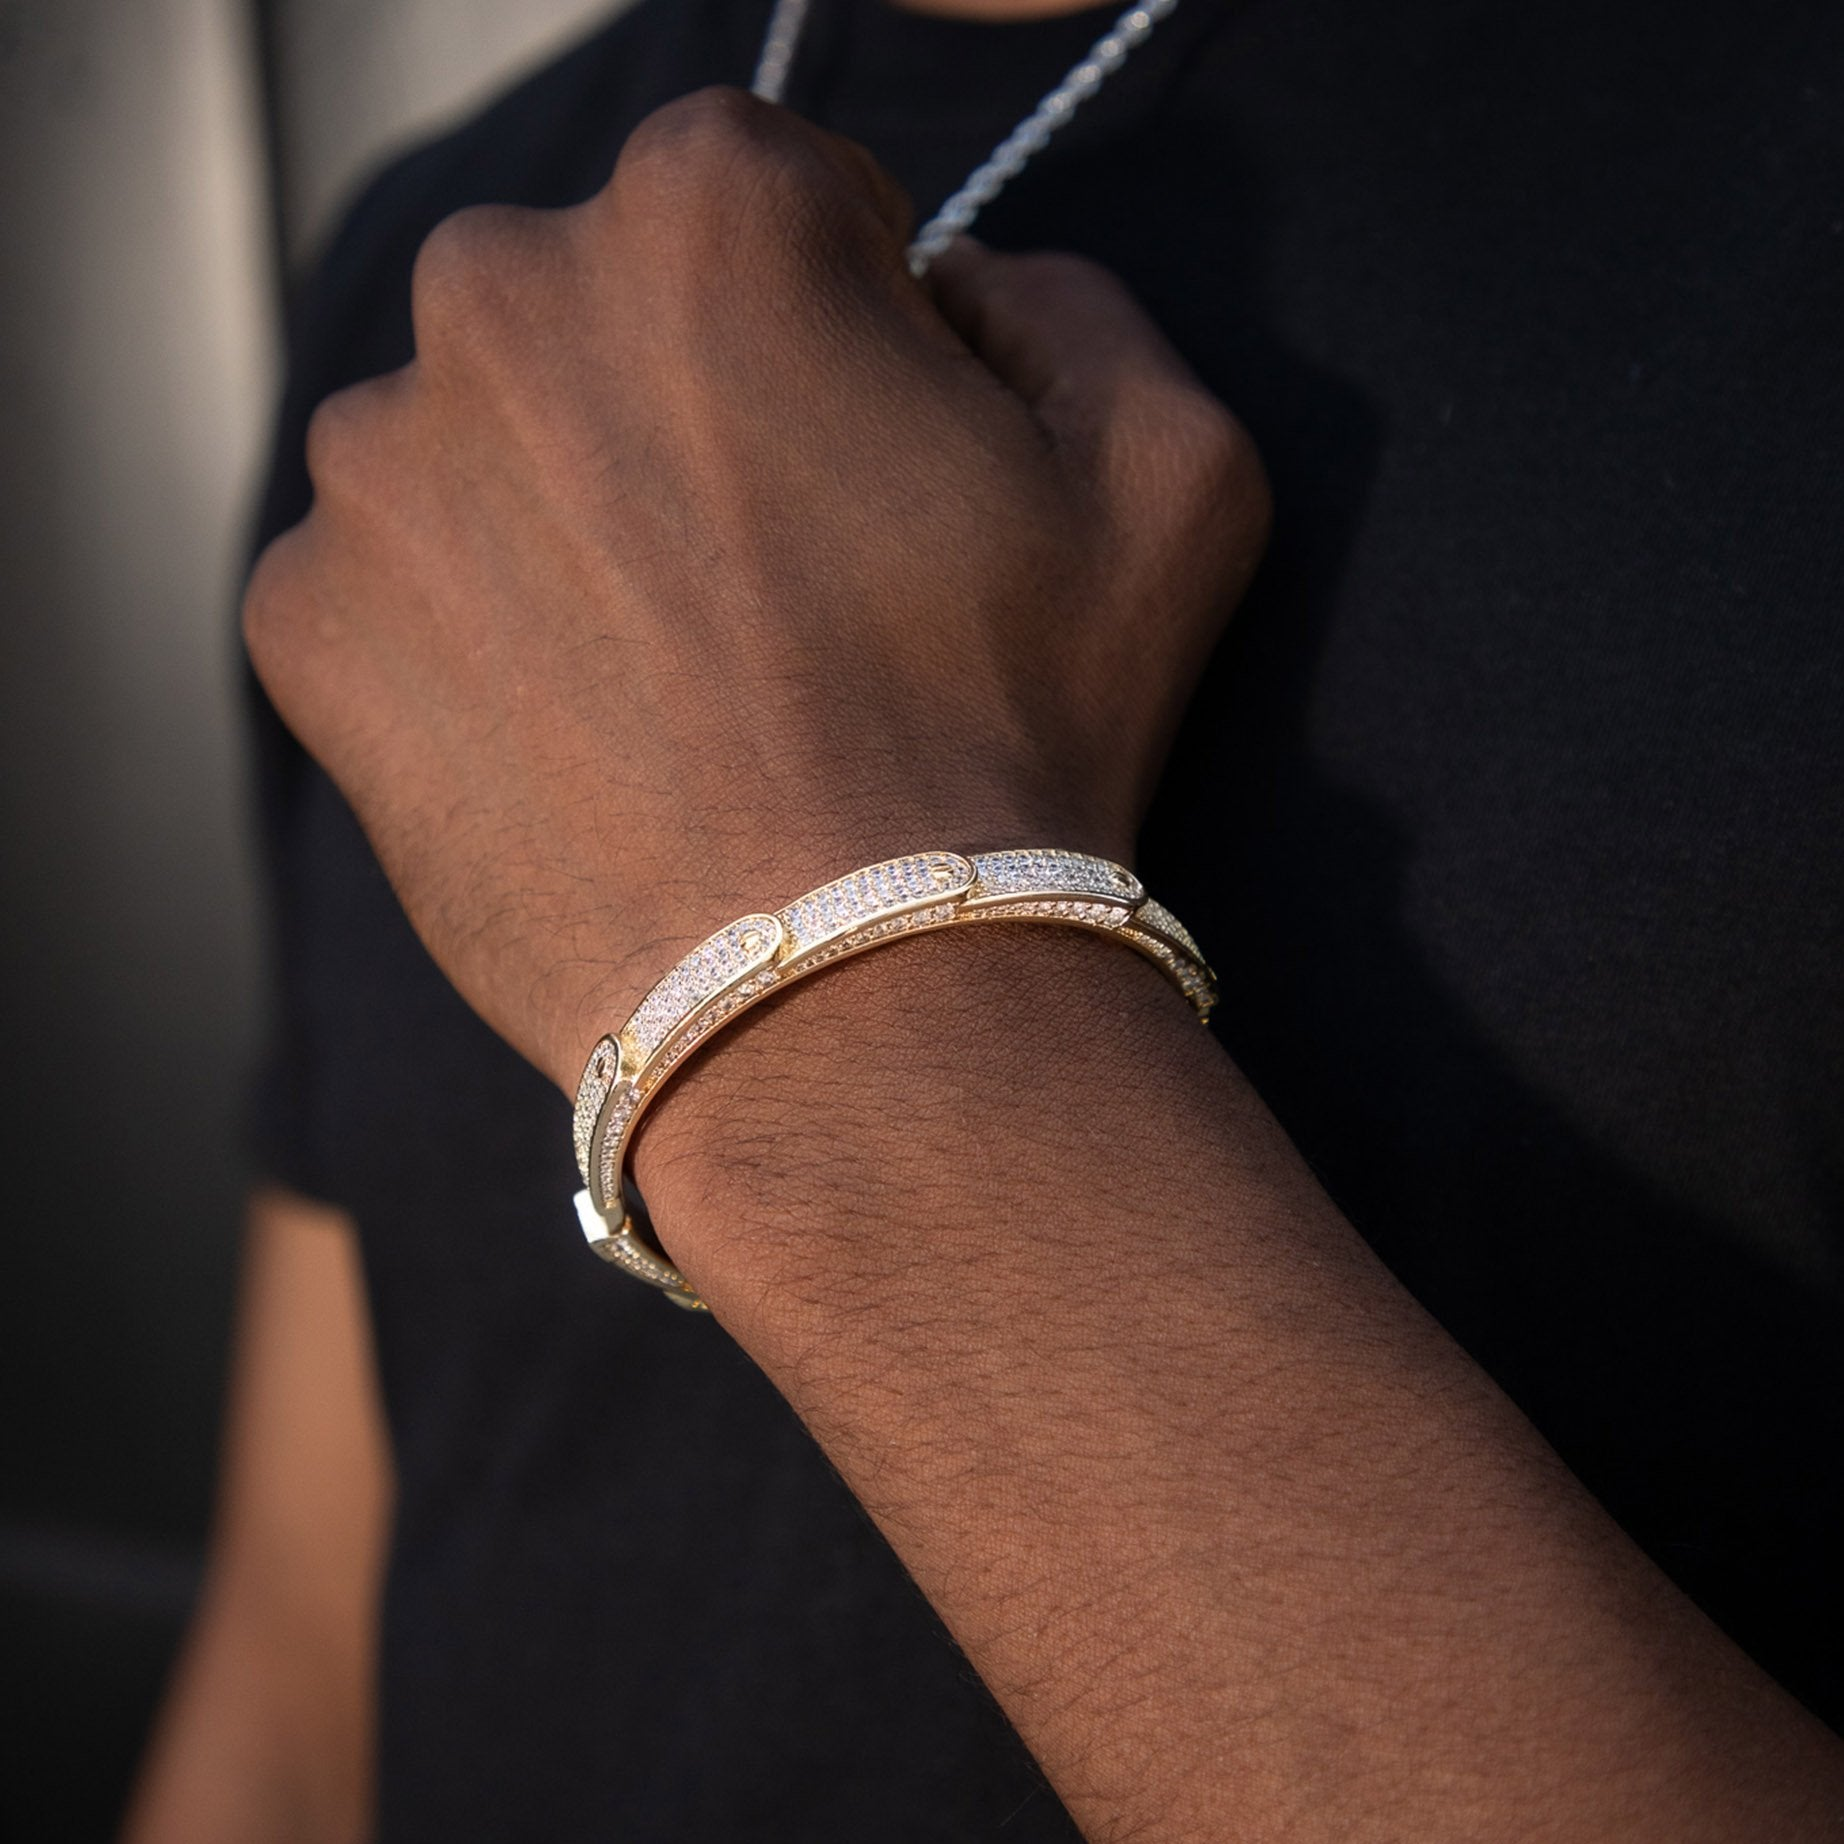 Golden Stacked Band Bracelet - Got Drip - Jewelry - Ice - Jake Paul